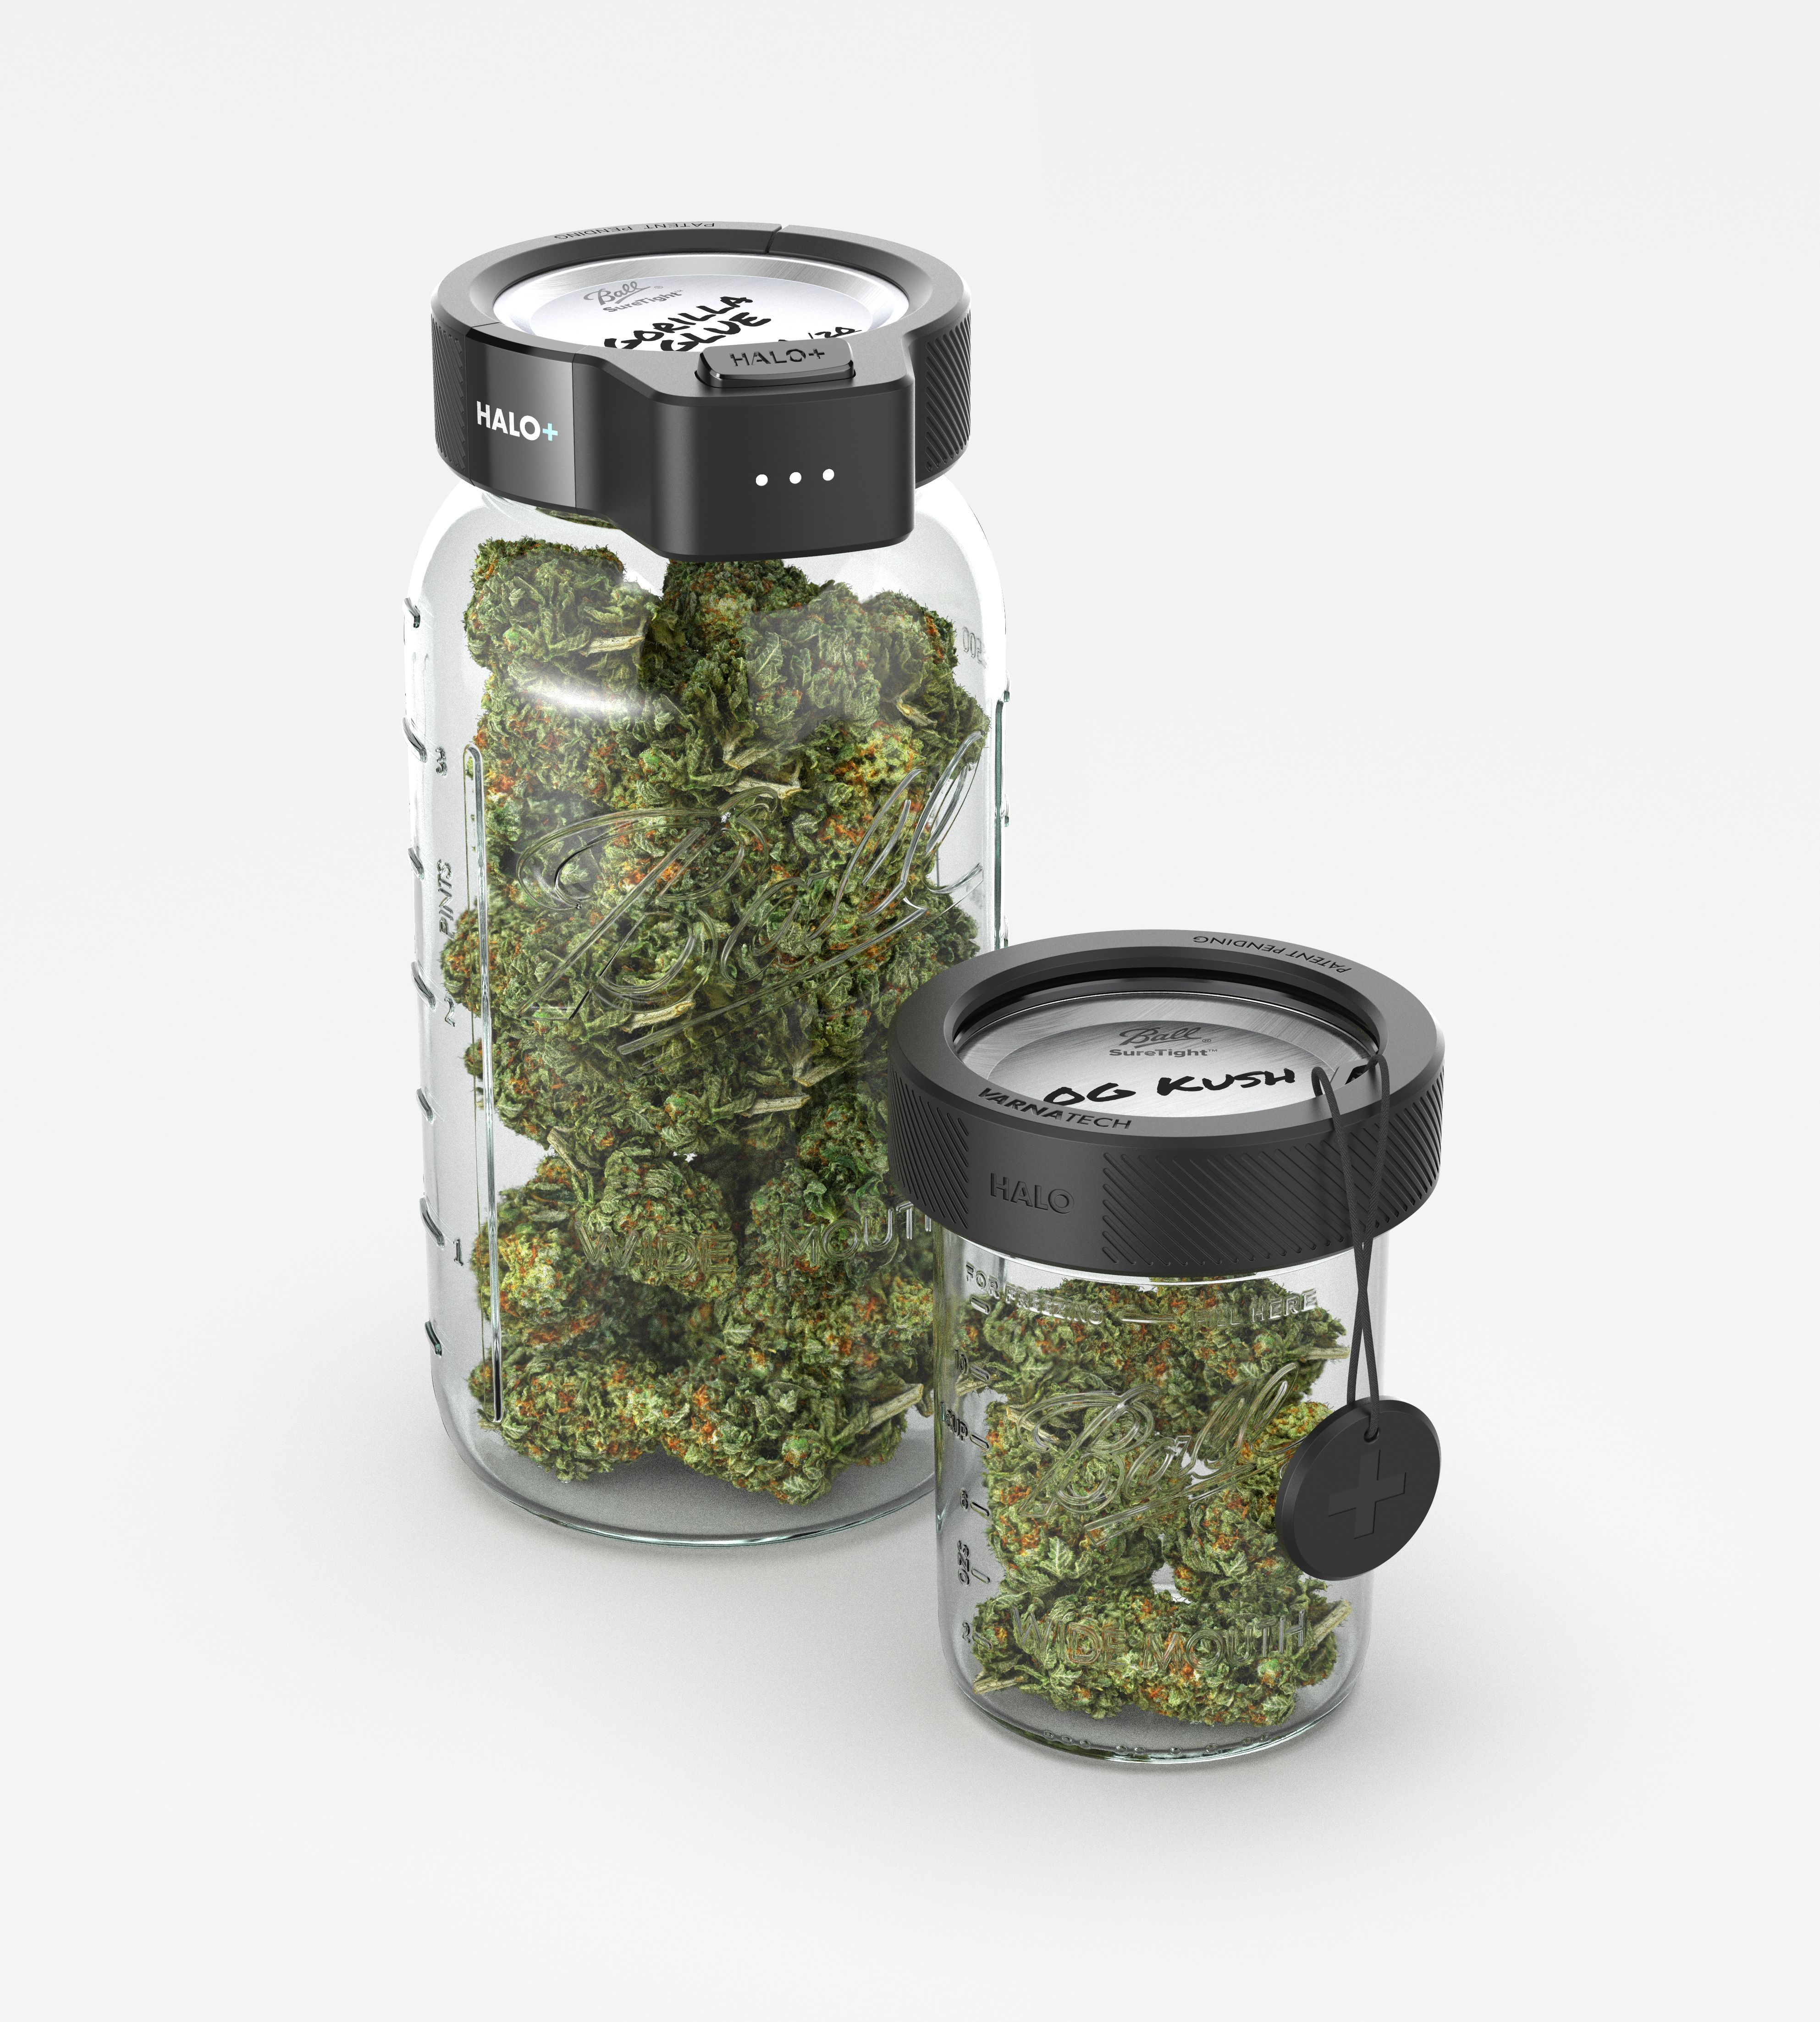 3D CAD Render by Sprout Studios of Varna Tech Halo with +Tag and Halo+ with marijuana